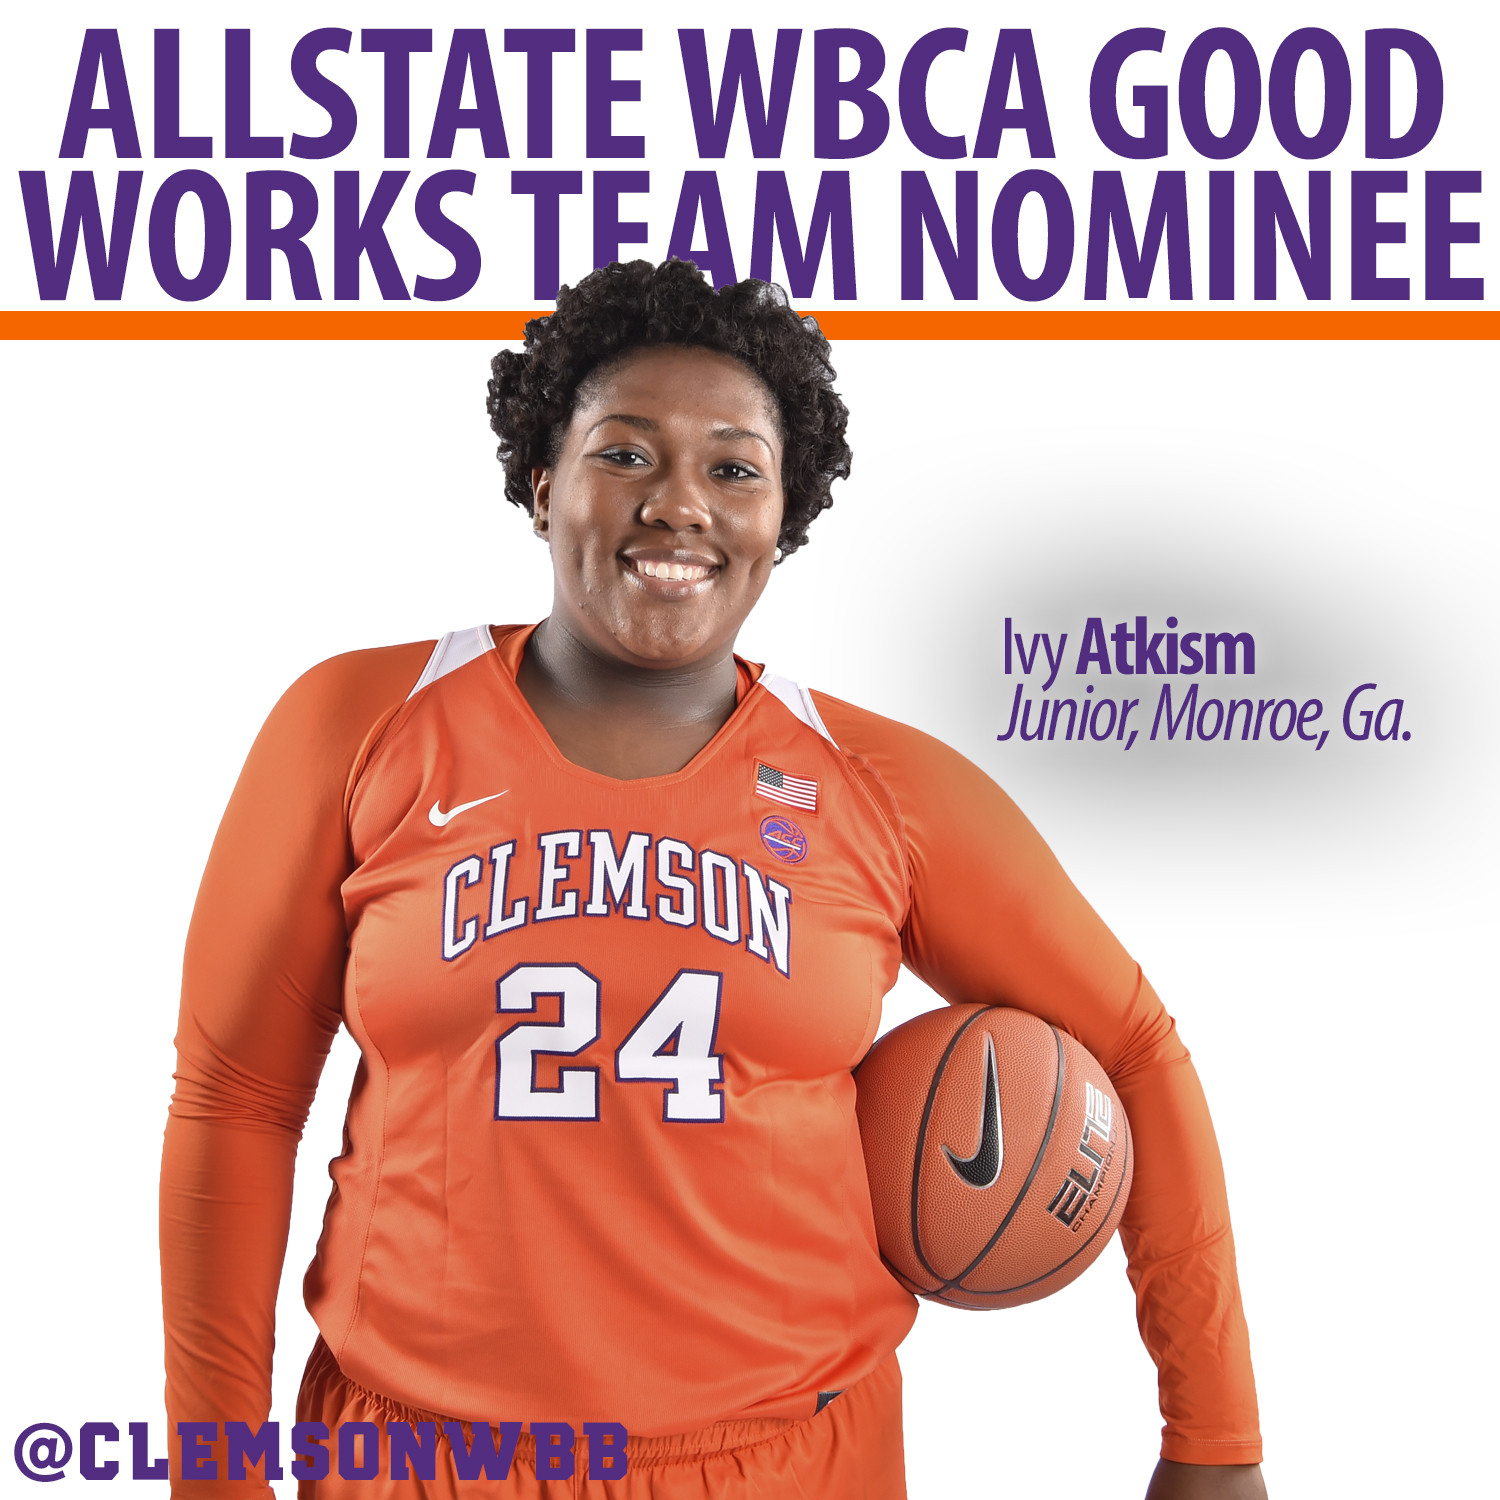 Ivy Atkism Named Nominee for Allstate WBCA Good Works Team